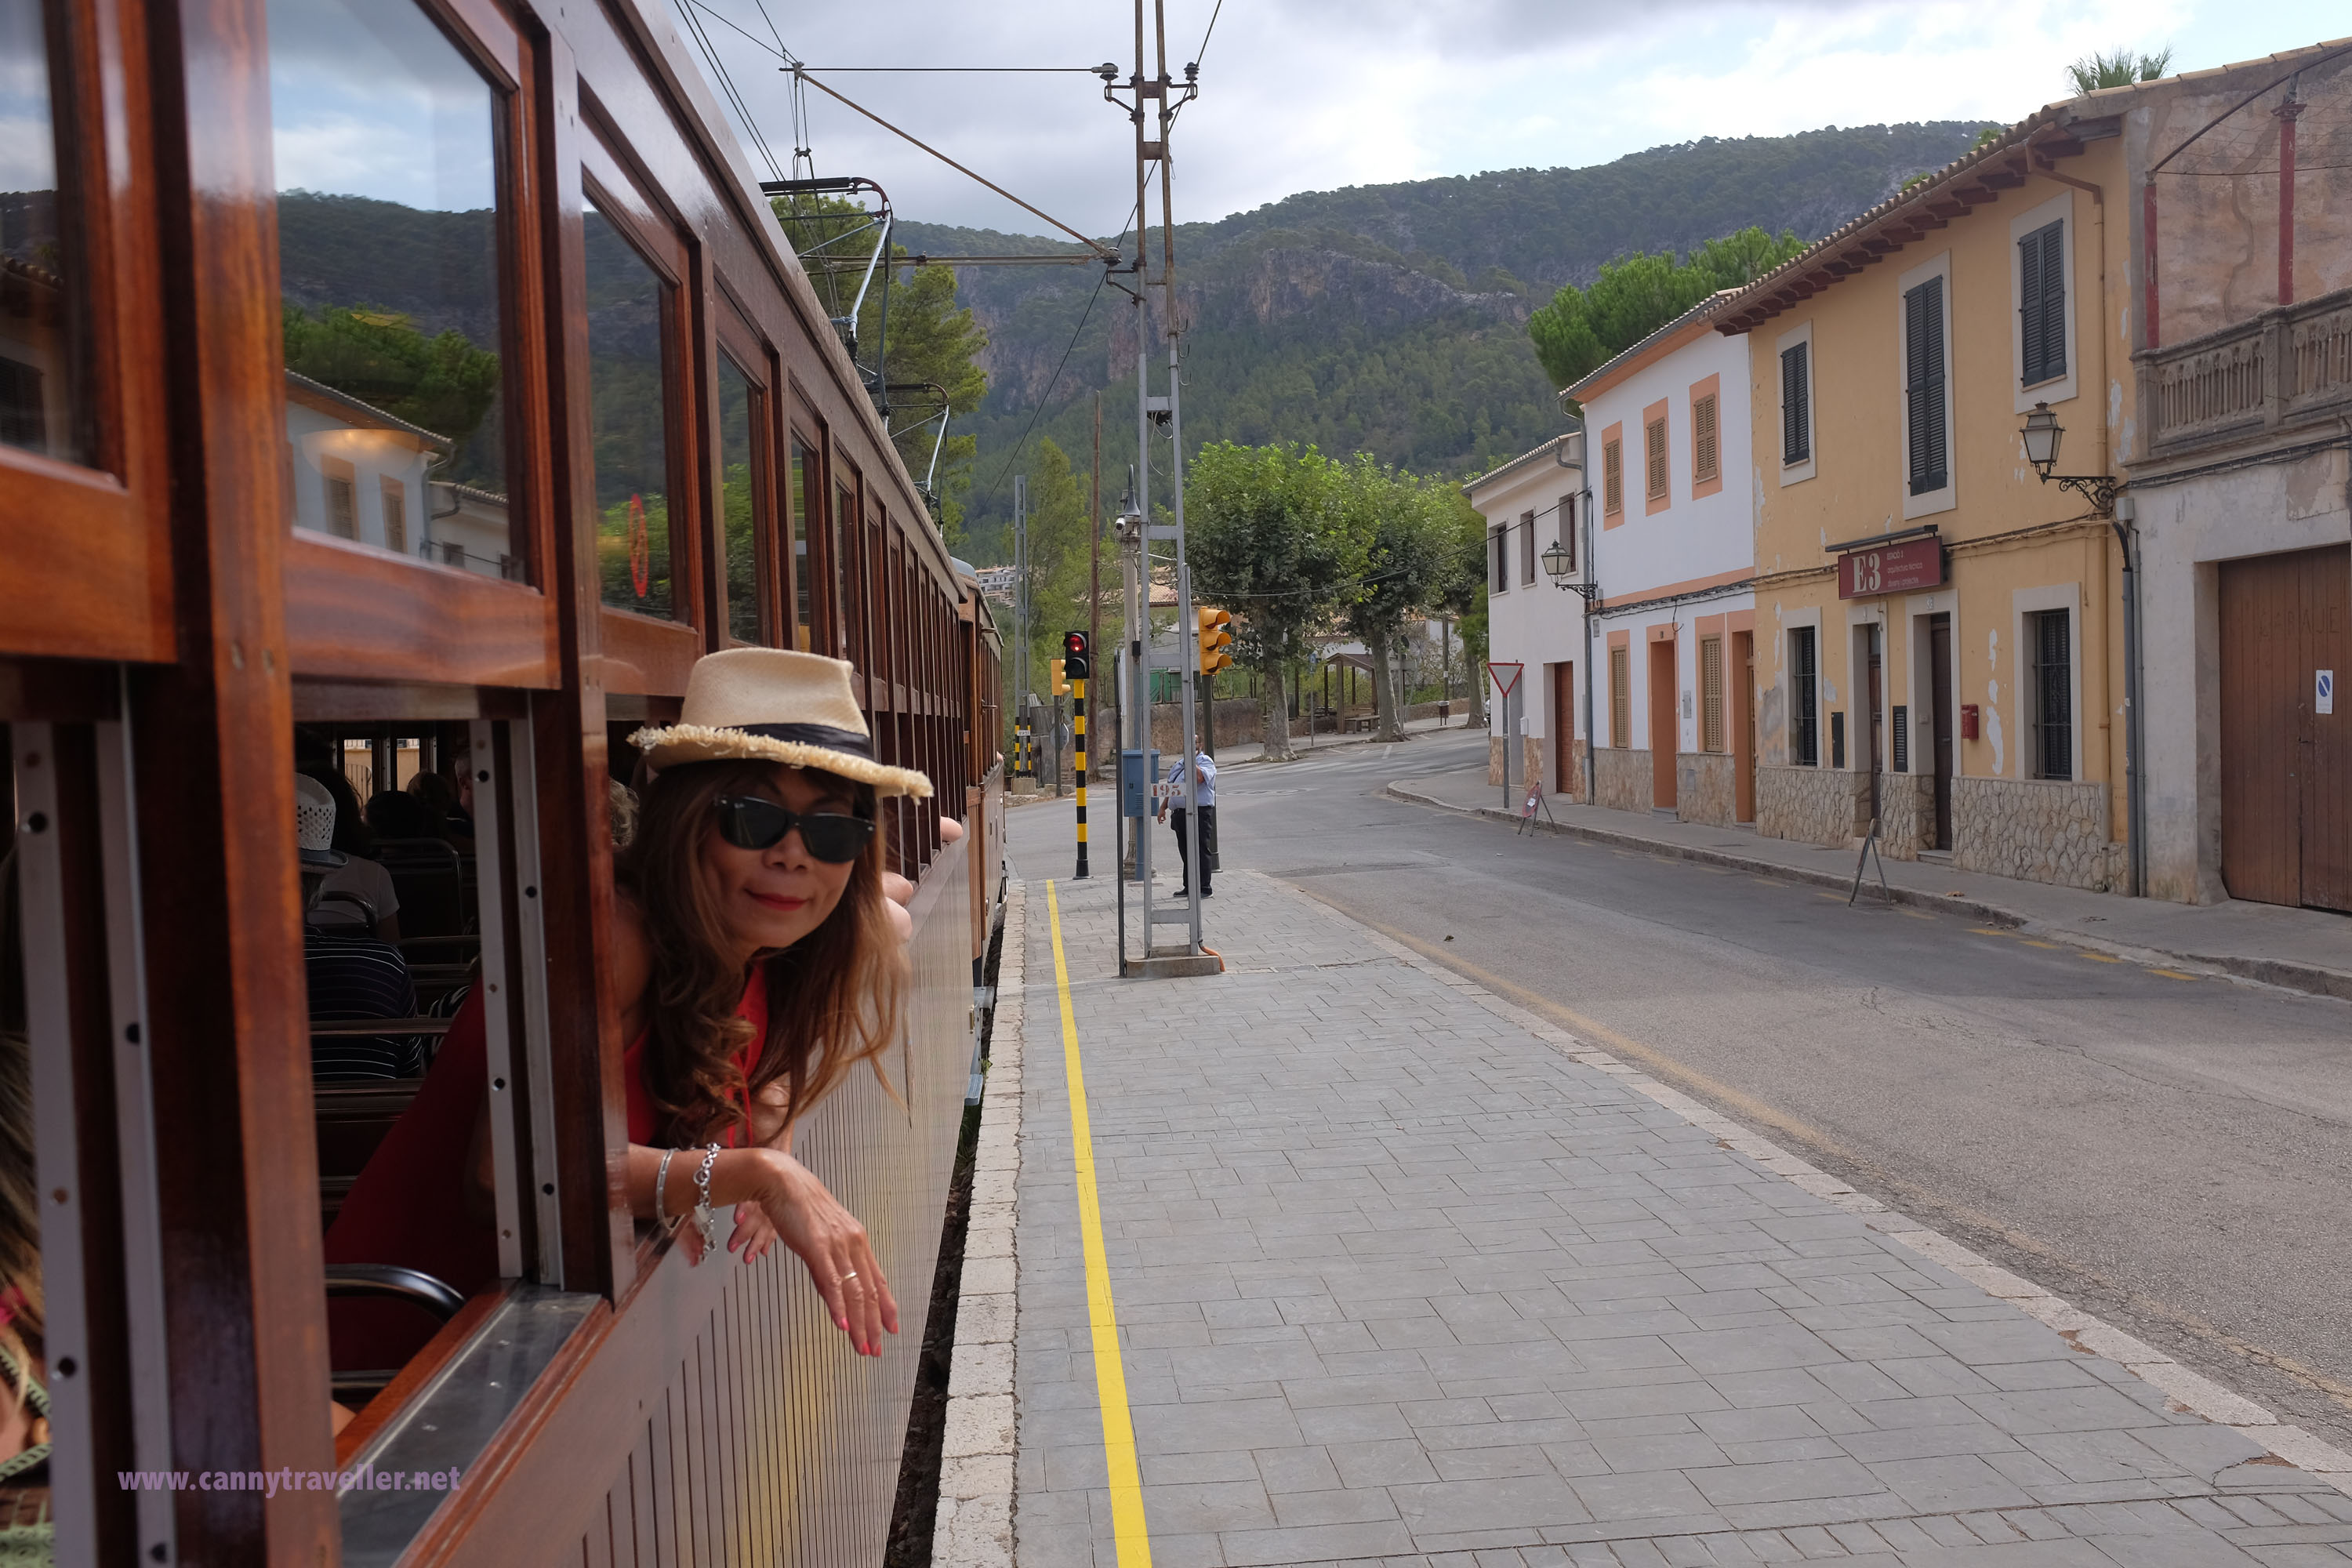 On the Orange Express from Palma to Soller, Majorca